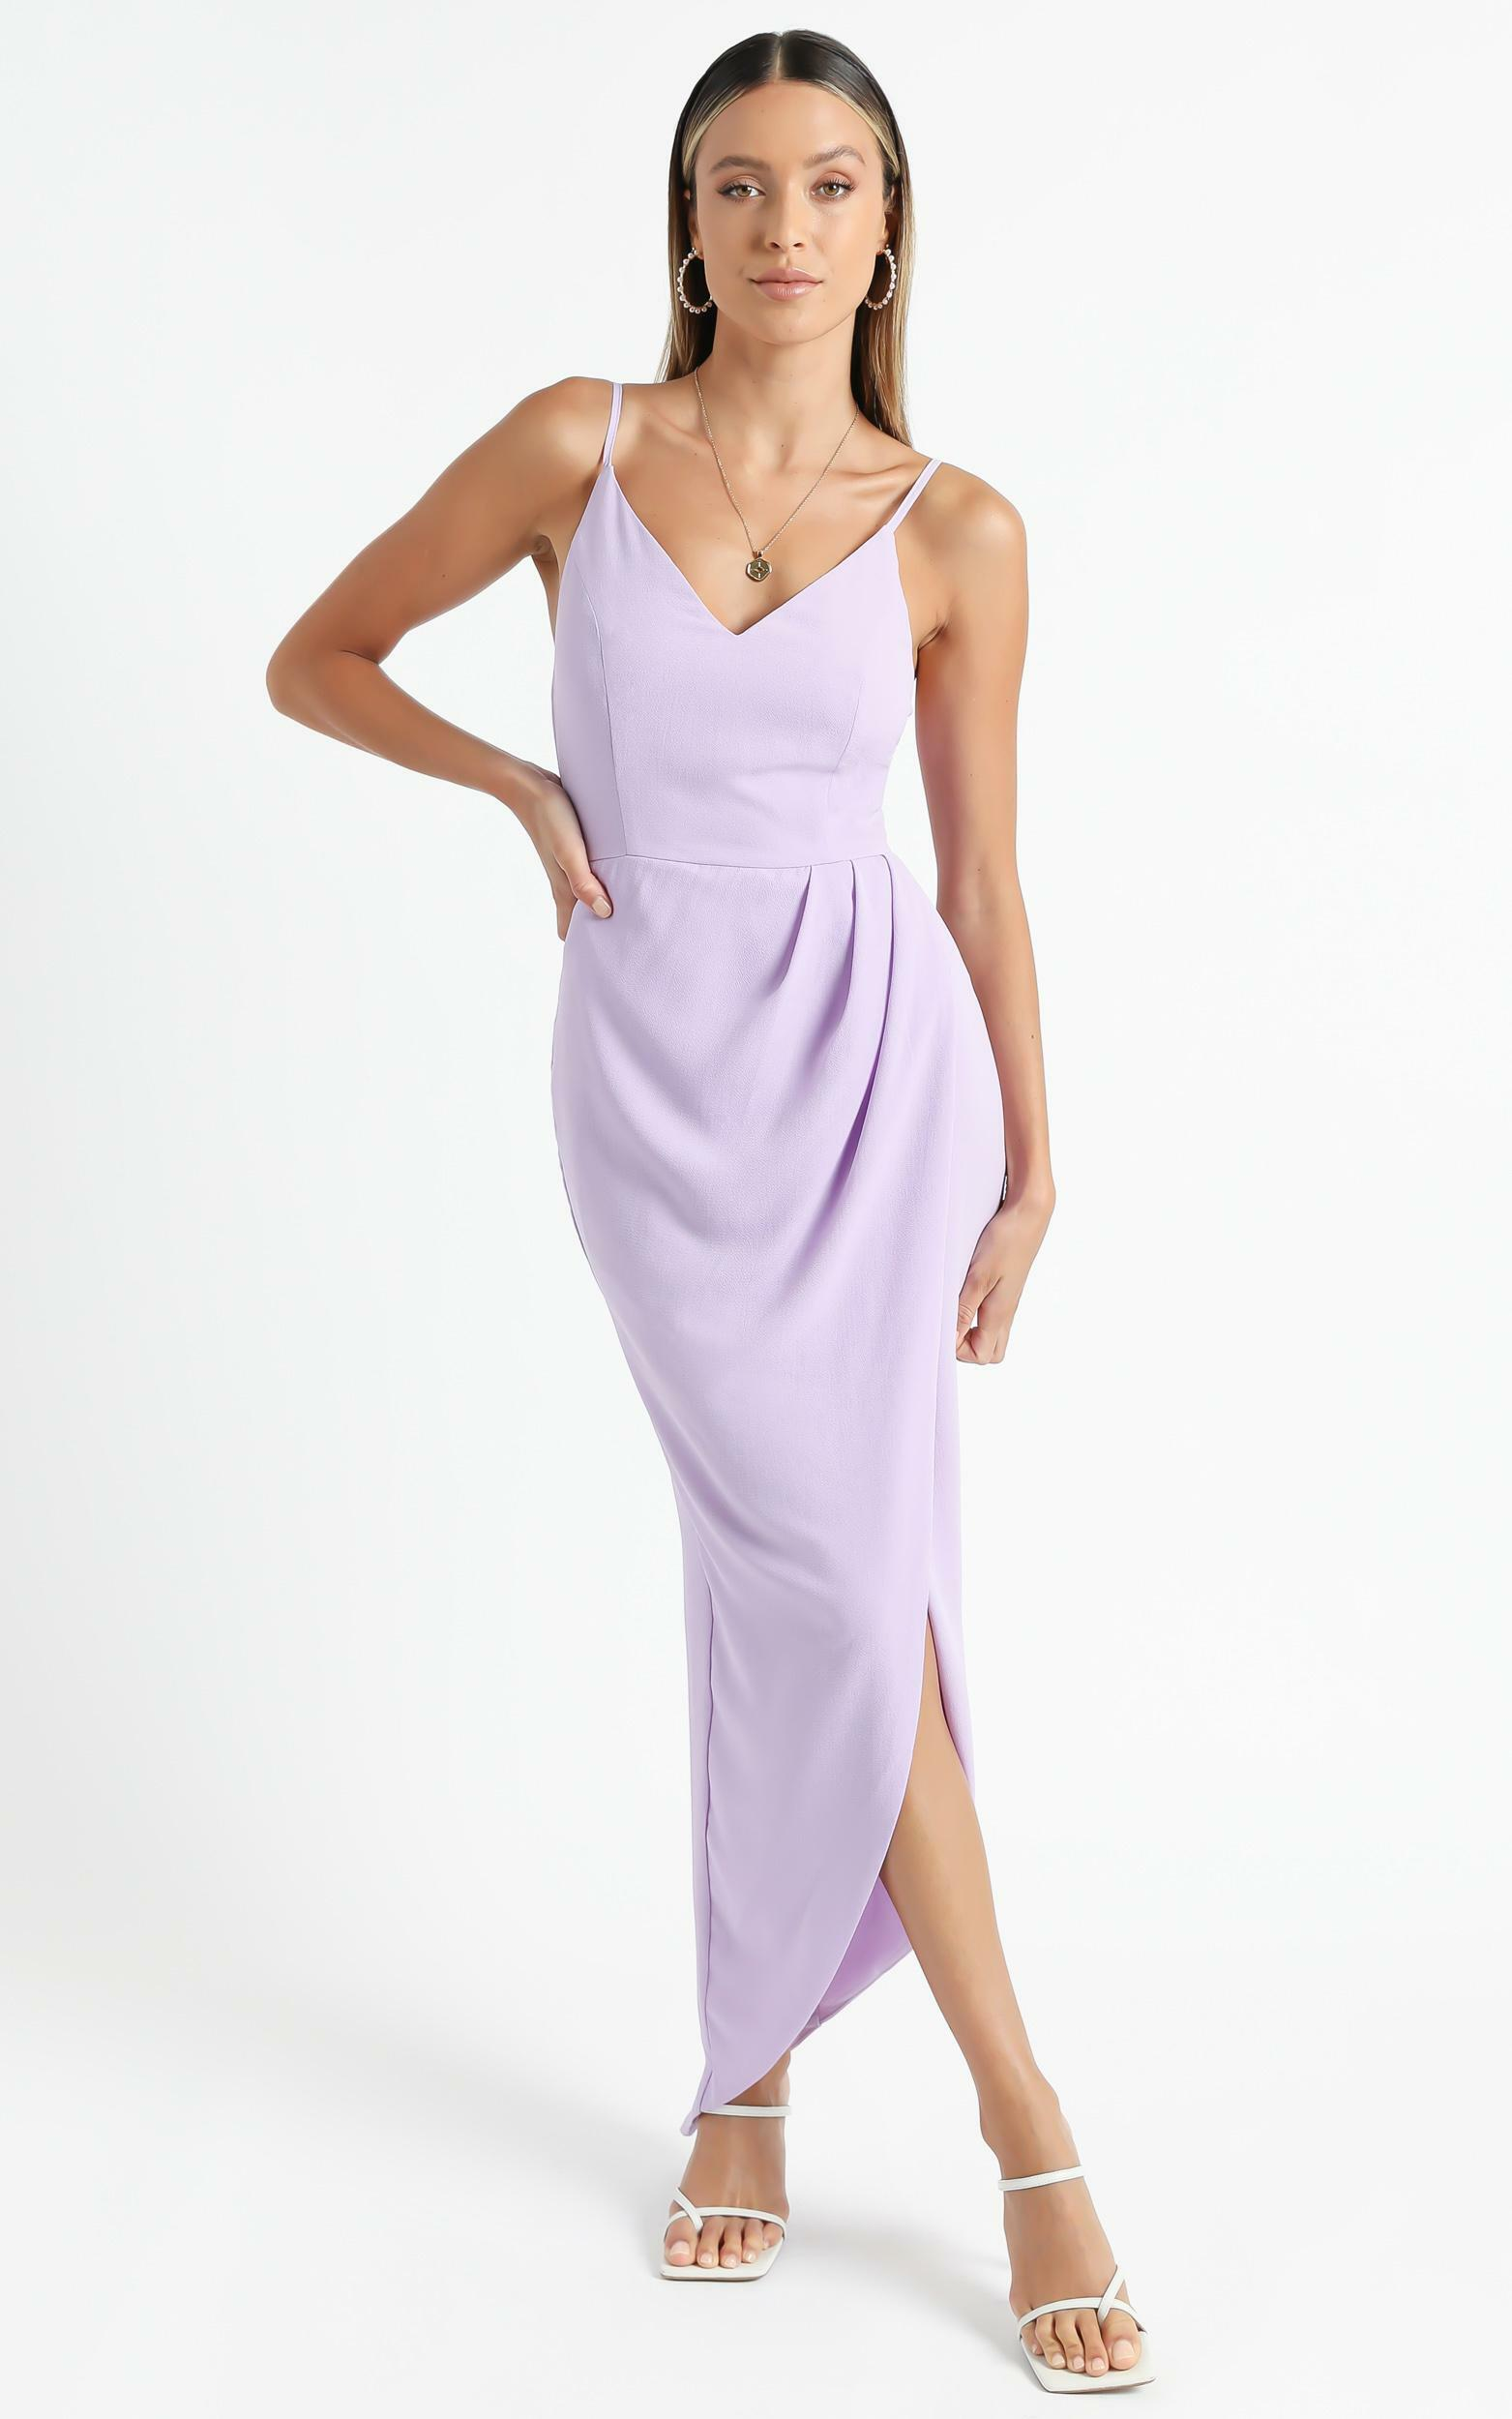 Lucky Day Maxi Dress in Lilac - 6 (XS), PRP3, hi-res image number null